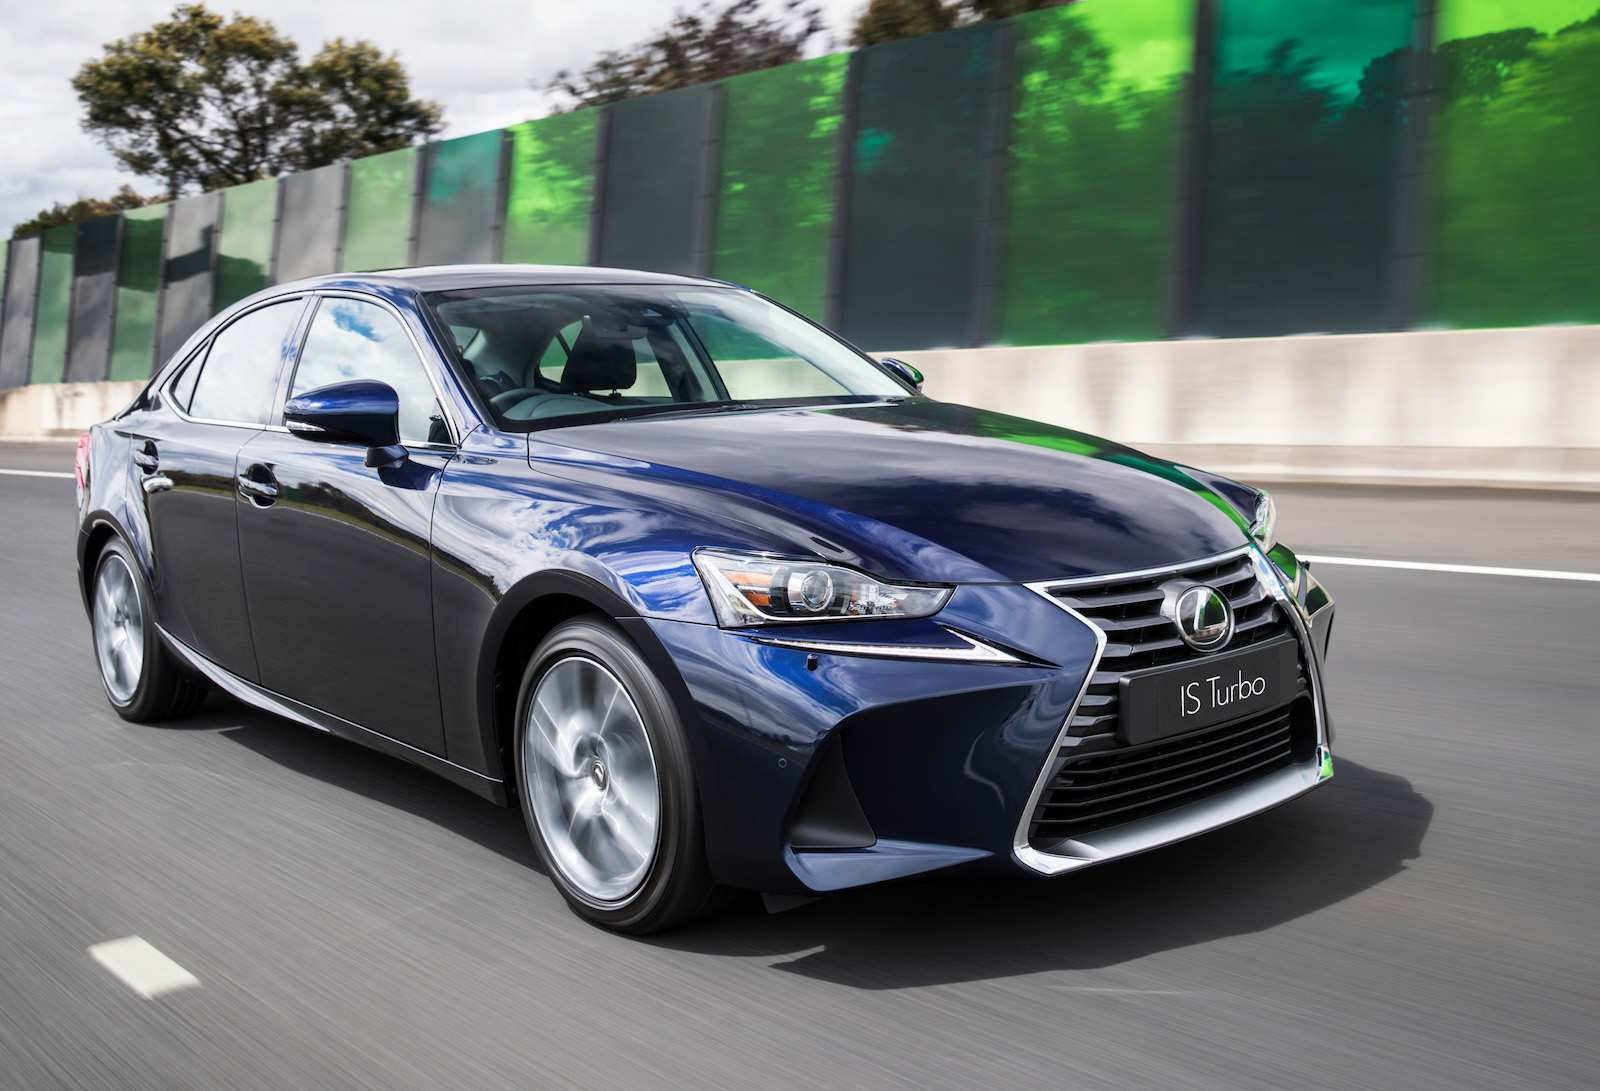 28 The Best 2020 Lexus IS350 Price And Release Date